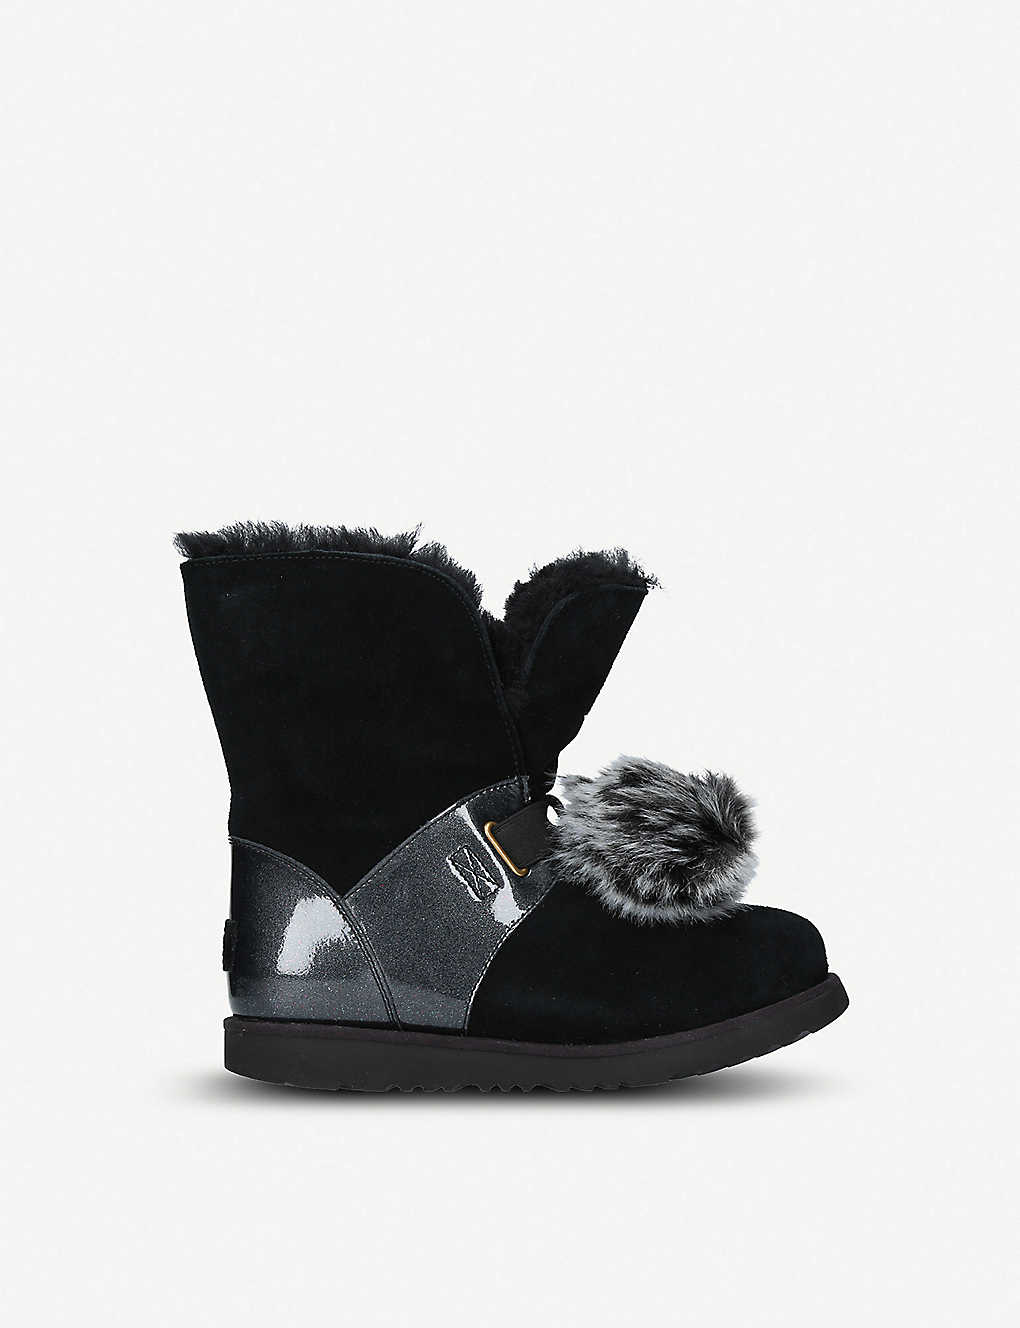 a0195c92d80 UGG - Isley waterproof leather pom pom boots 5.5-9.5 years ...